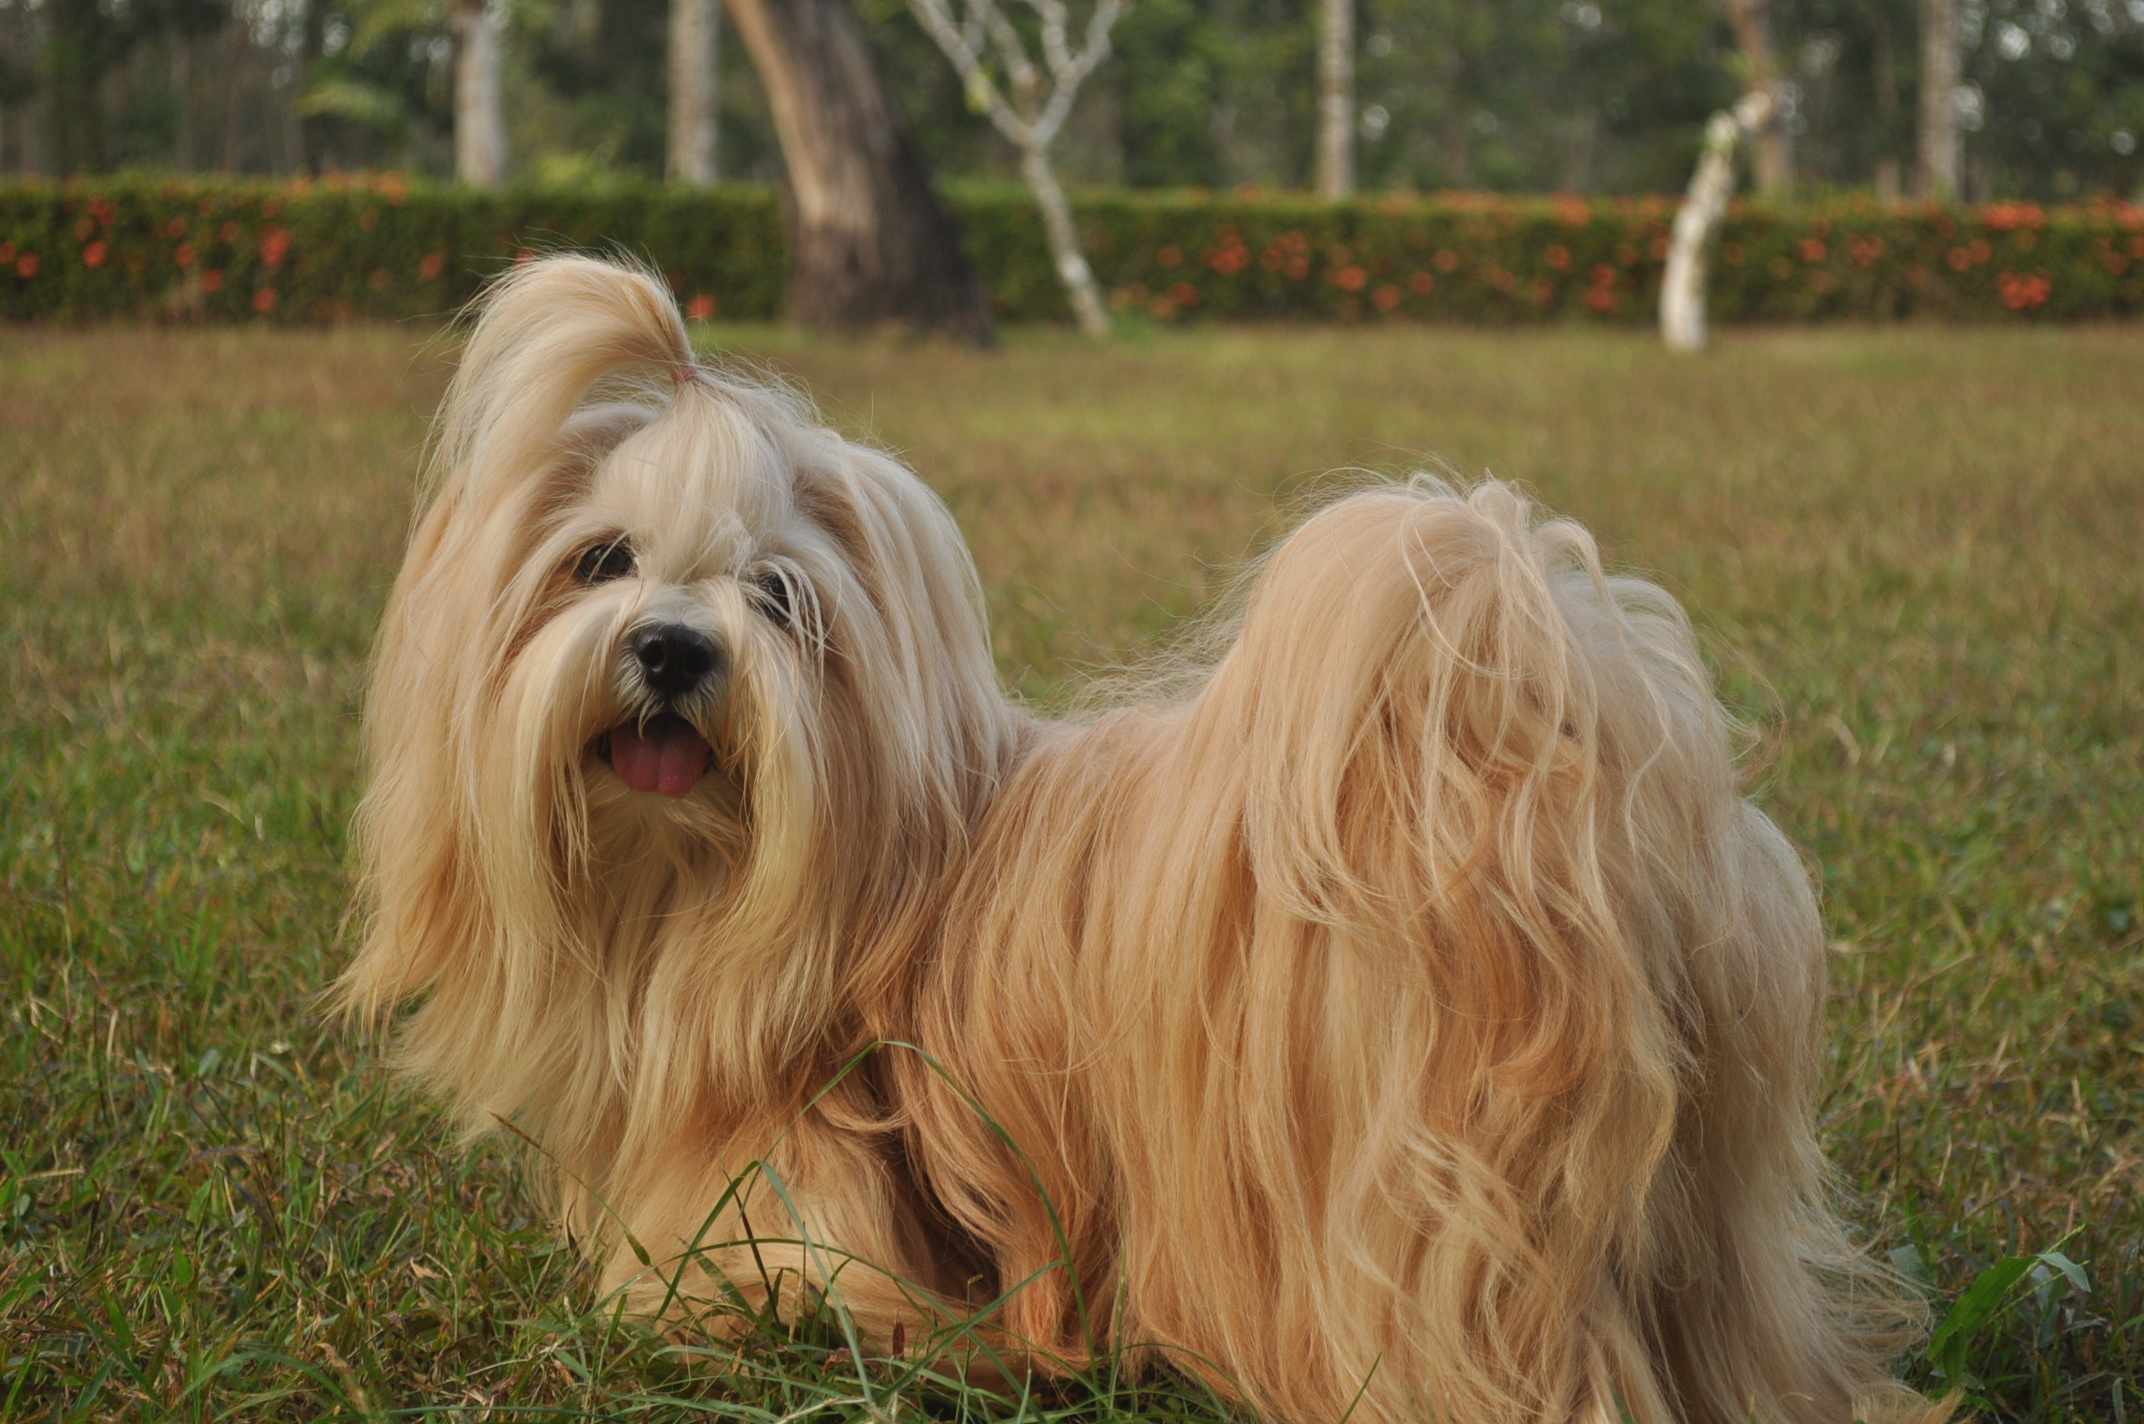 Cheery Serious Underbites Pearly Underbites Y Never Go Pooch Glamour Lhasa Apsos Page Do Dogs Really Have Nightmares What Do Dogs Do When Y Have Nightmares Overbites Are A I Have Breddogs bark post Do Dogs Have Nightmares